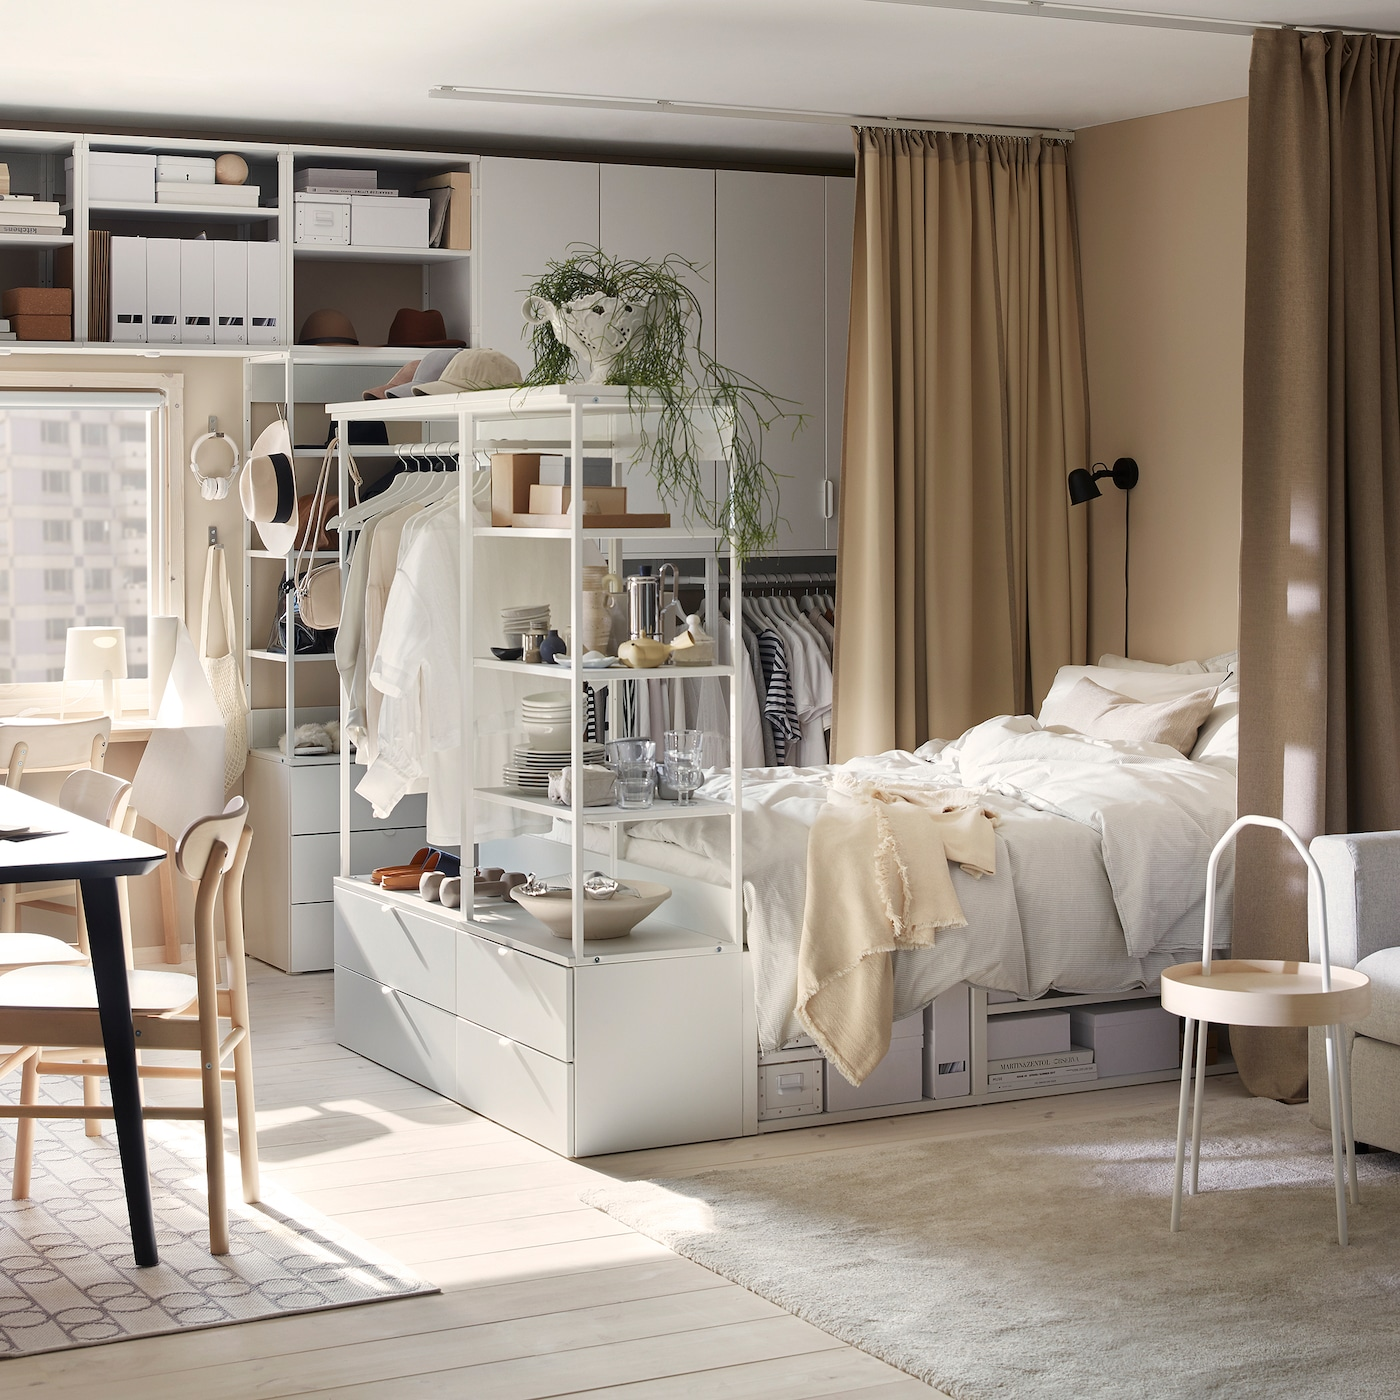 A studio flat with PLATSA storage combinations and bed frame in white, a black dining table and beige curtains.